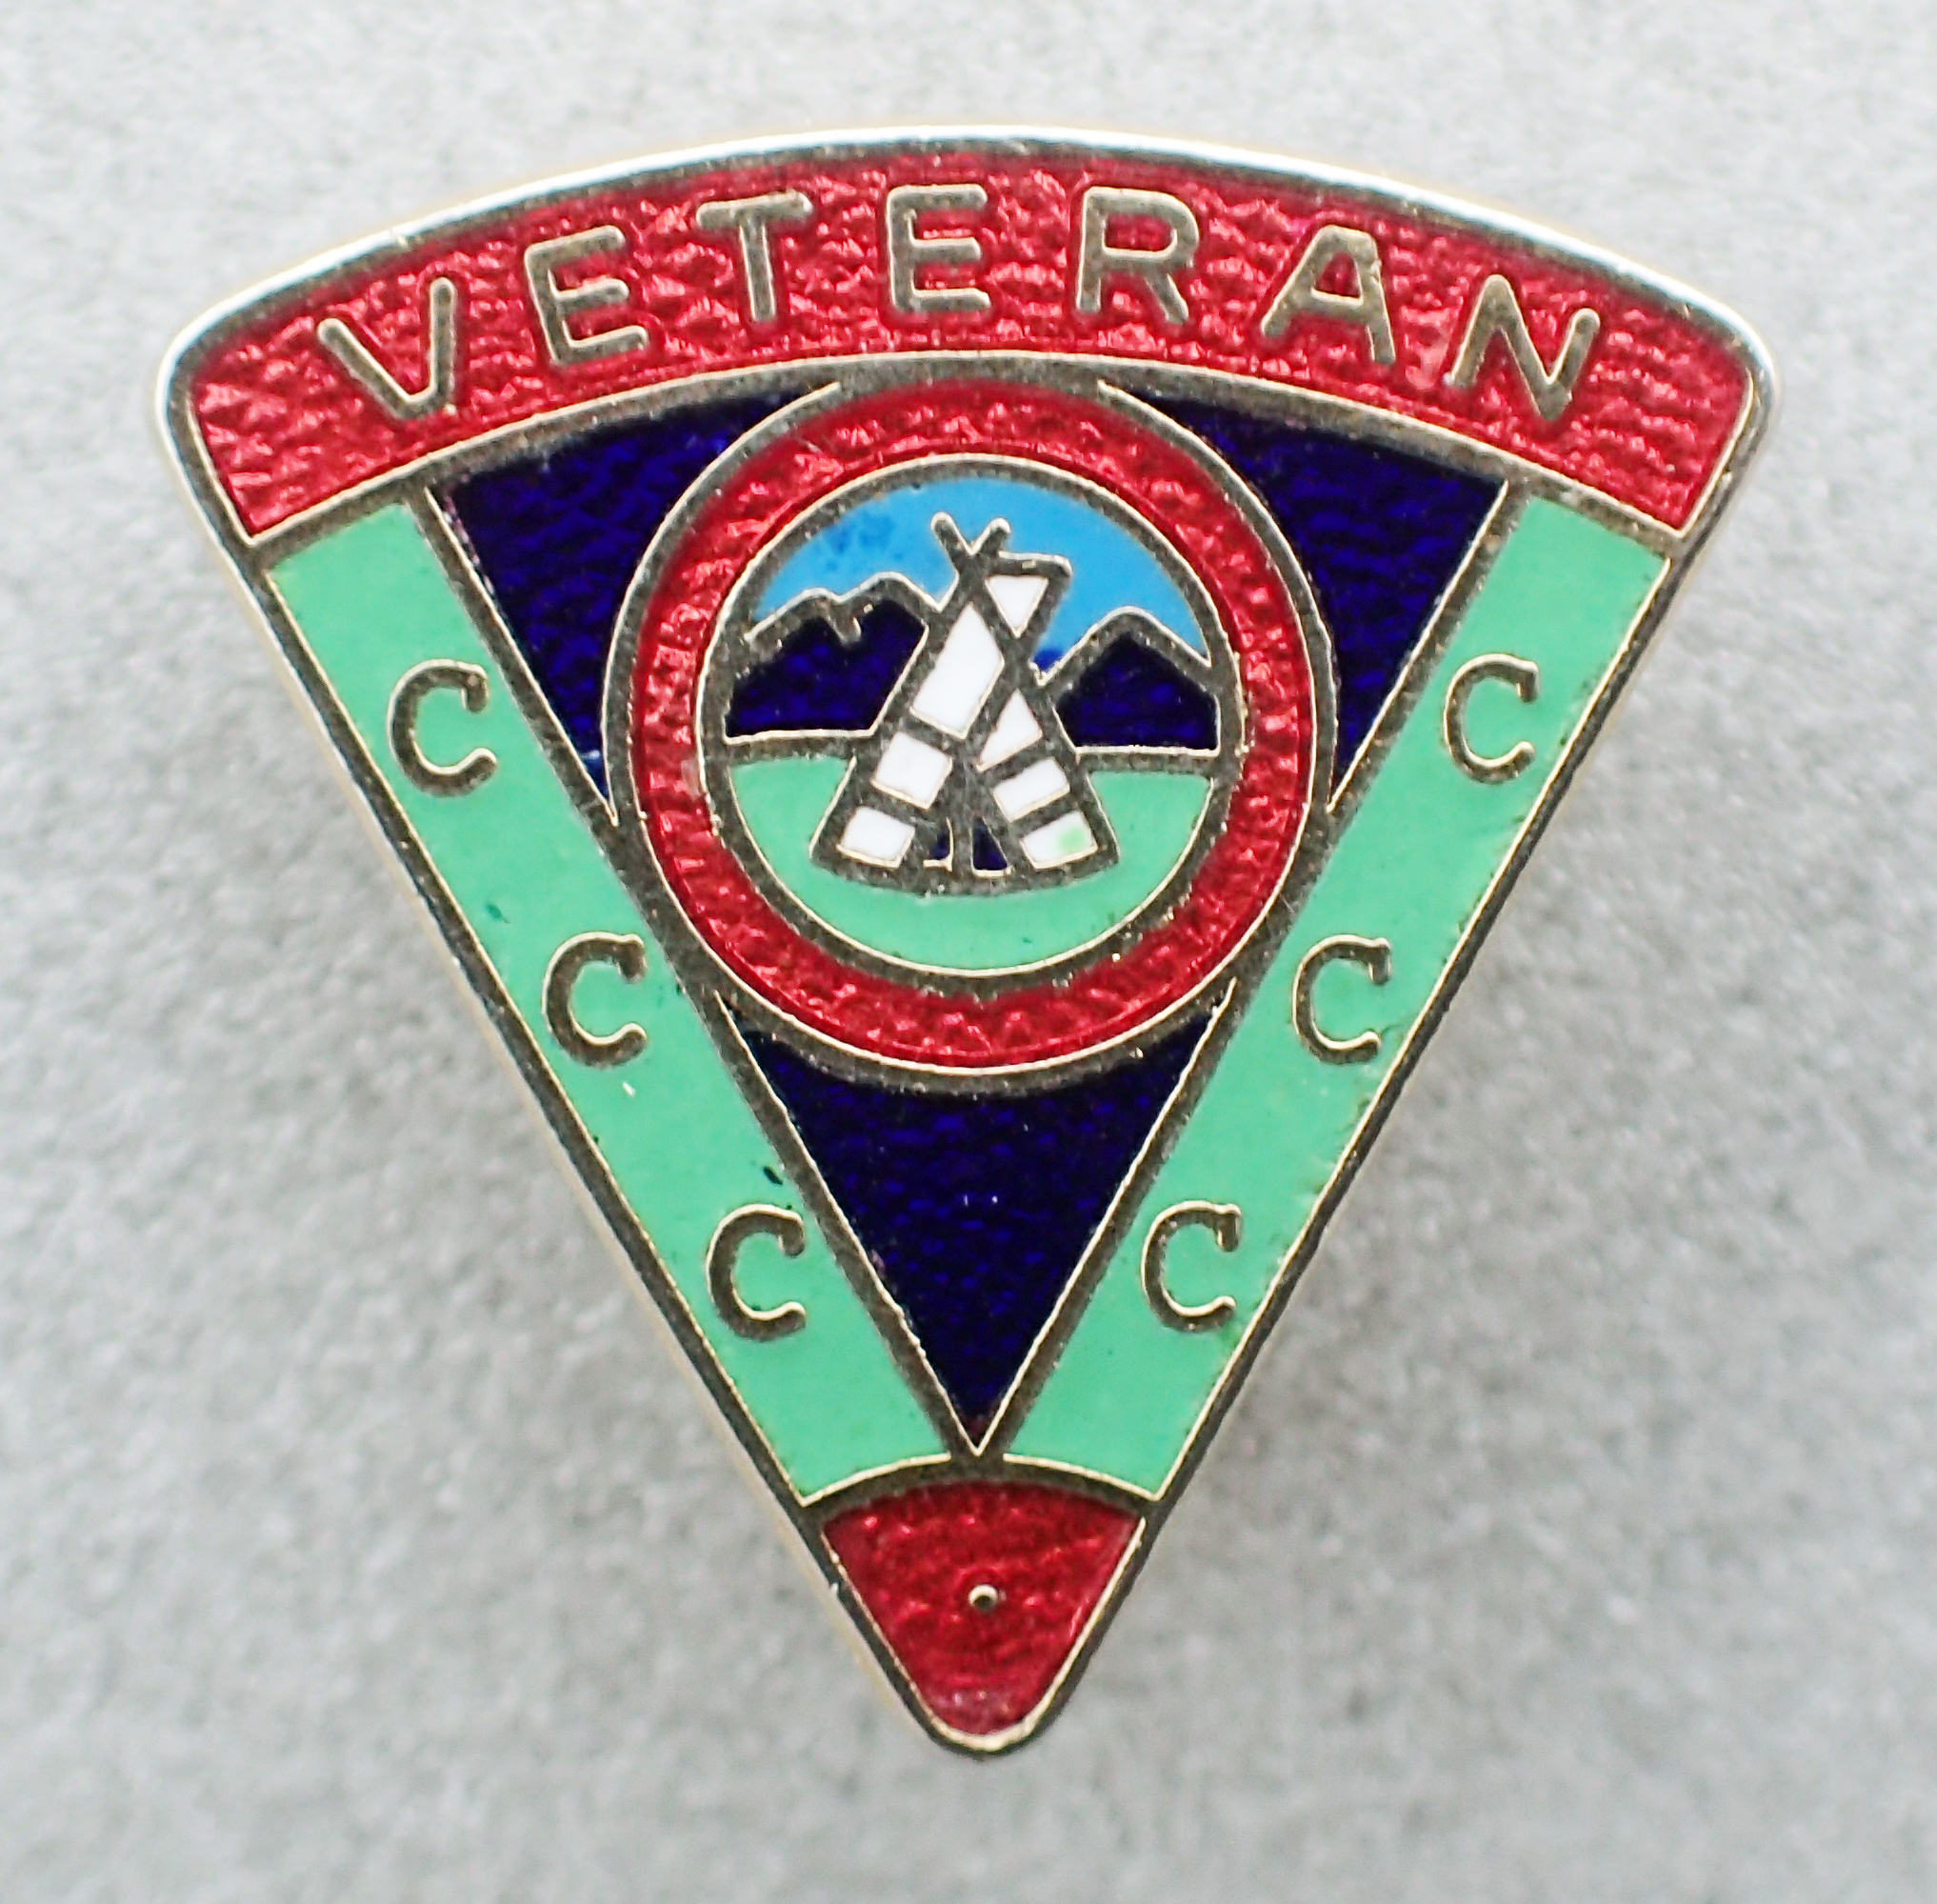 'Veteran's' badge, signifying longstanding continuous membership of the Camping and Caravanning Club